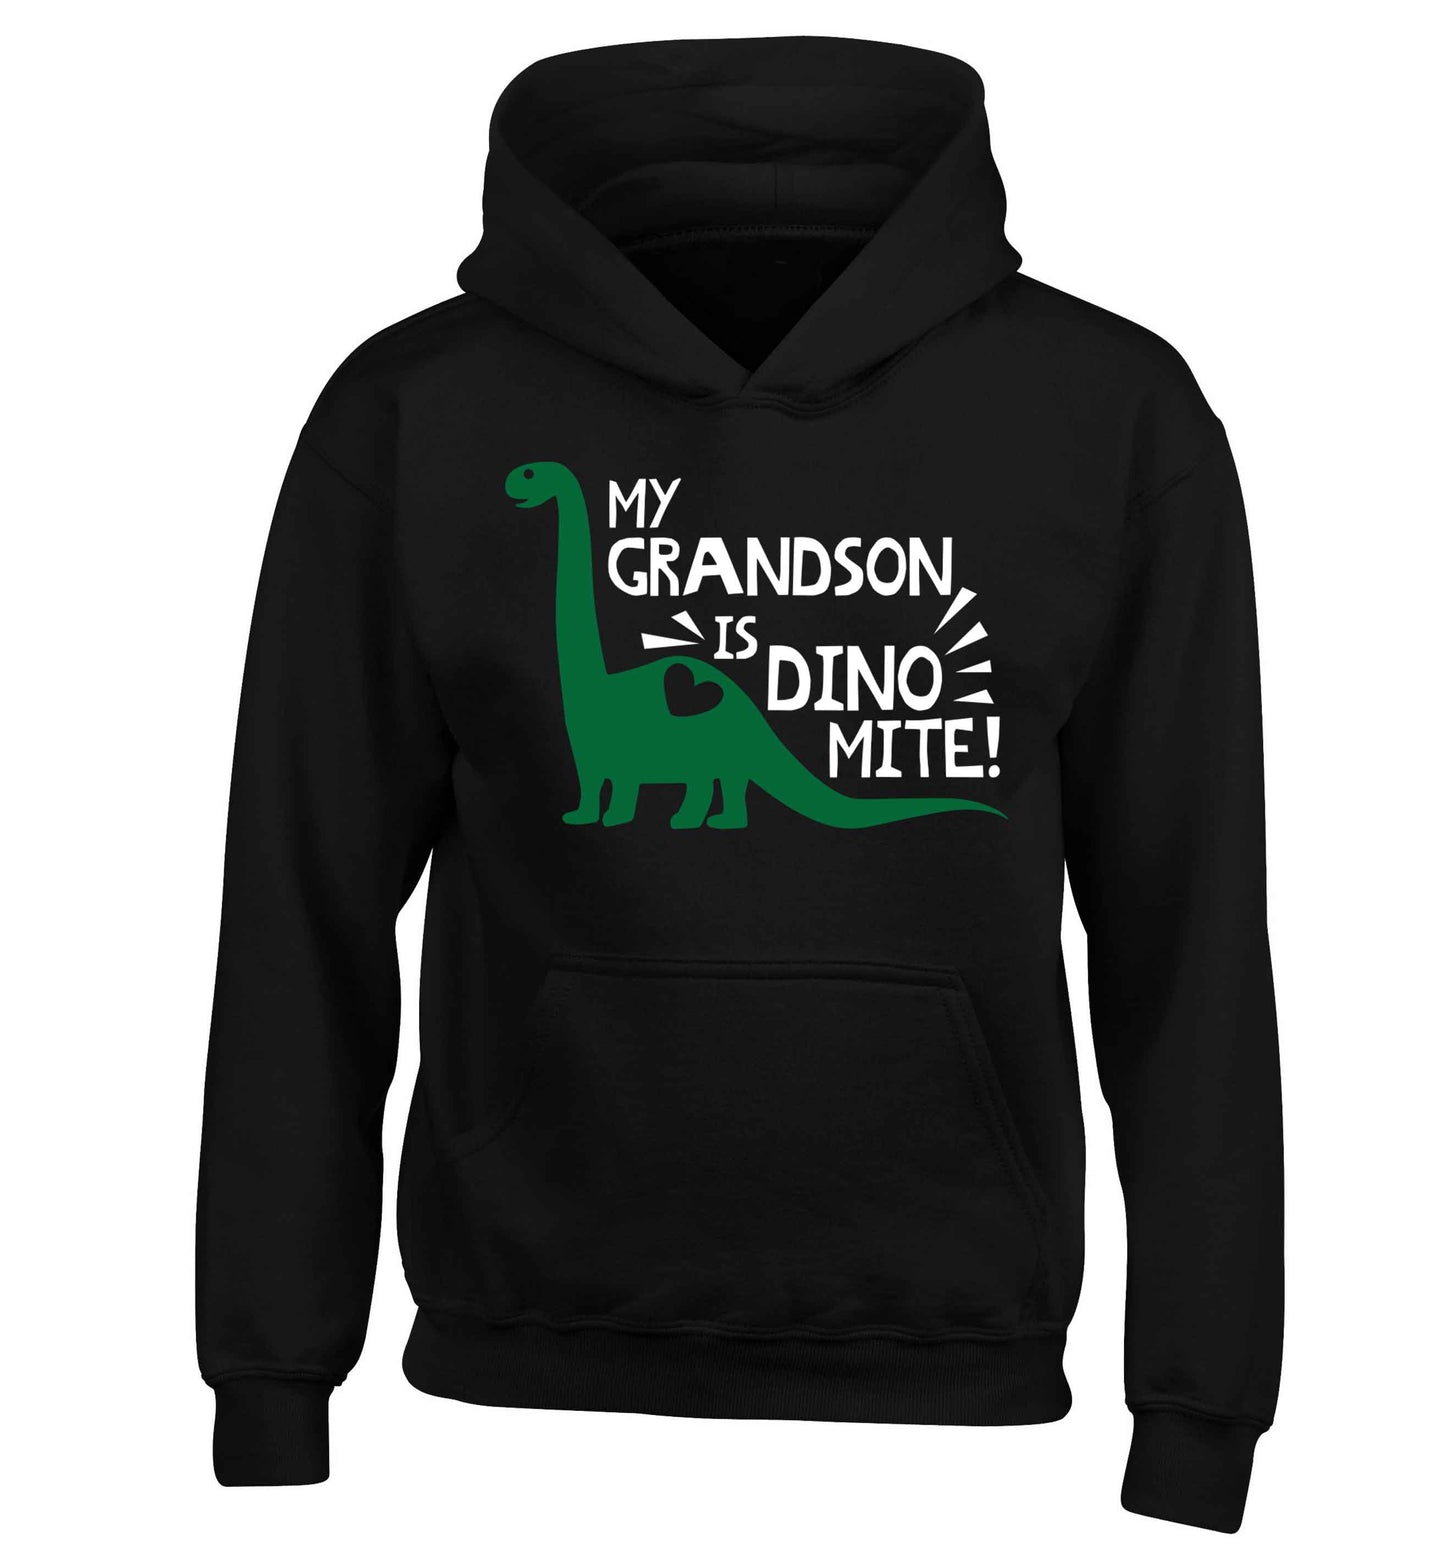 My grandson is dinomite! children's black hoodie 12-13 Years